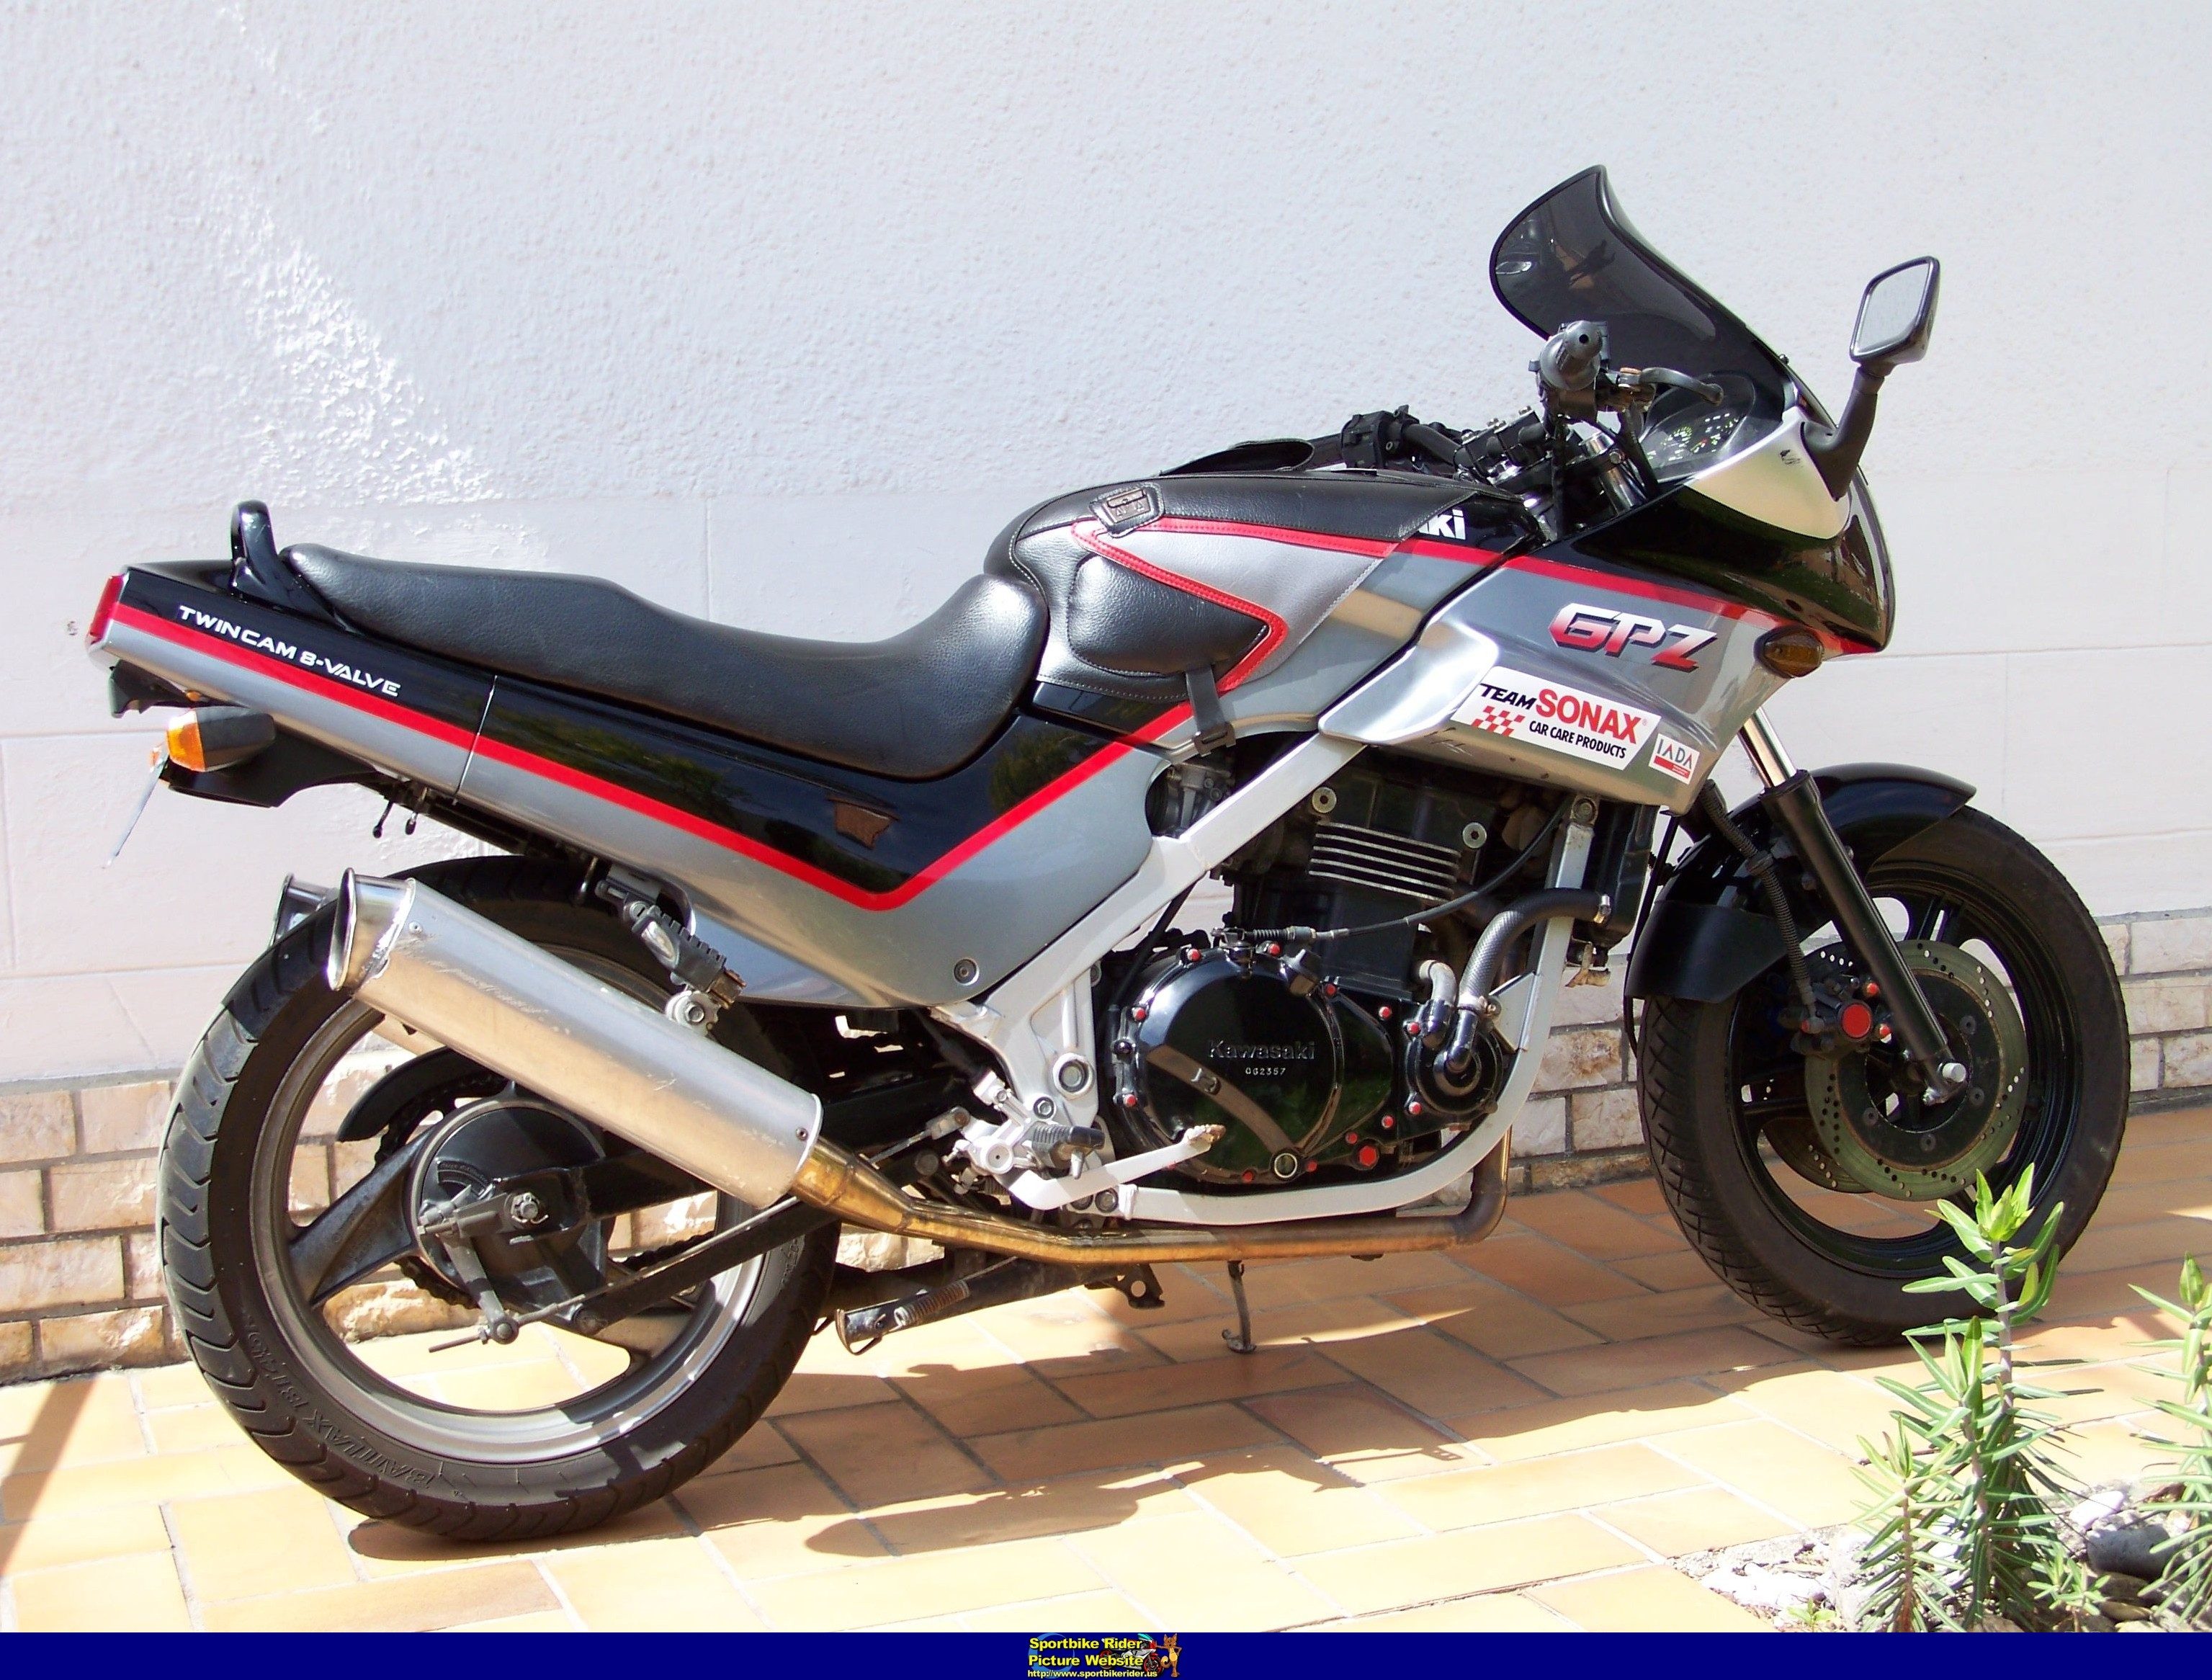 1998 Kawasaki Gpz 500 S Pics Specs And Information Wiring Diagram 33094